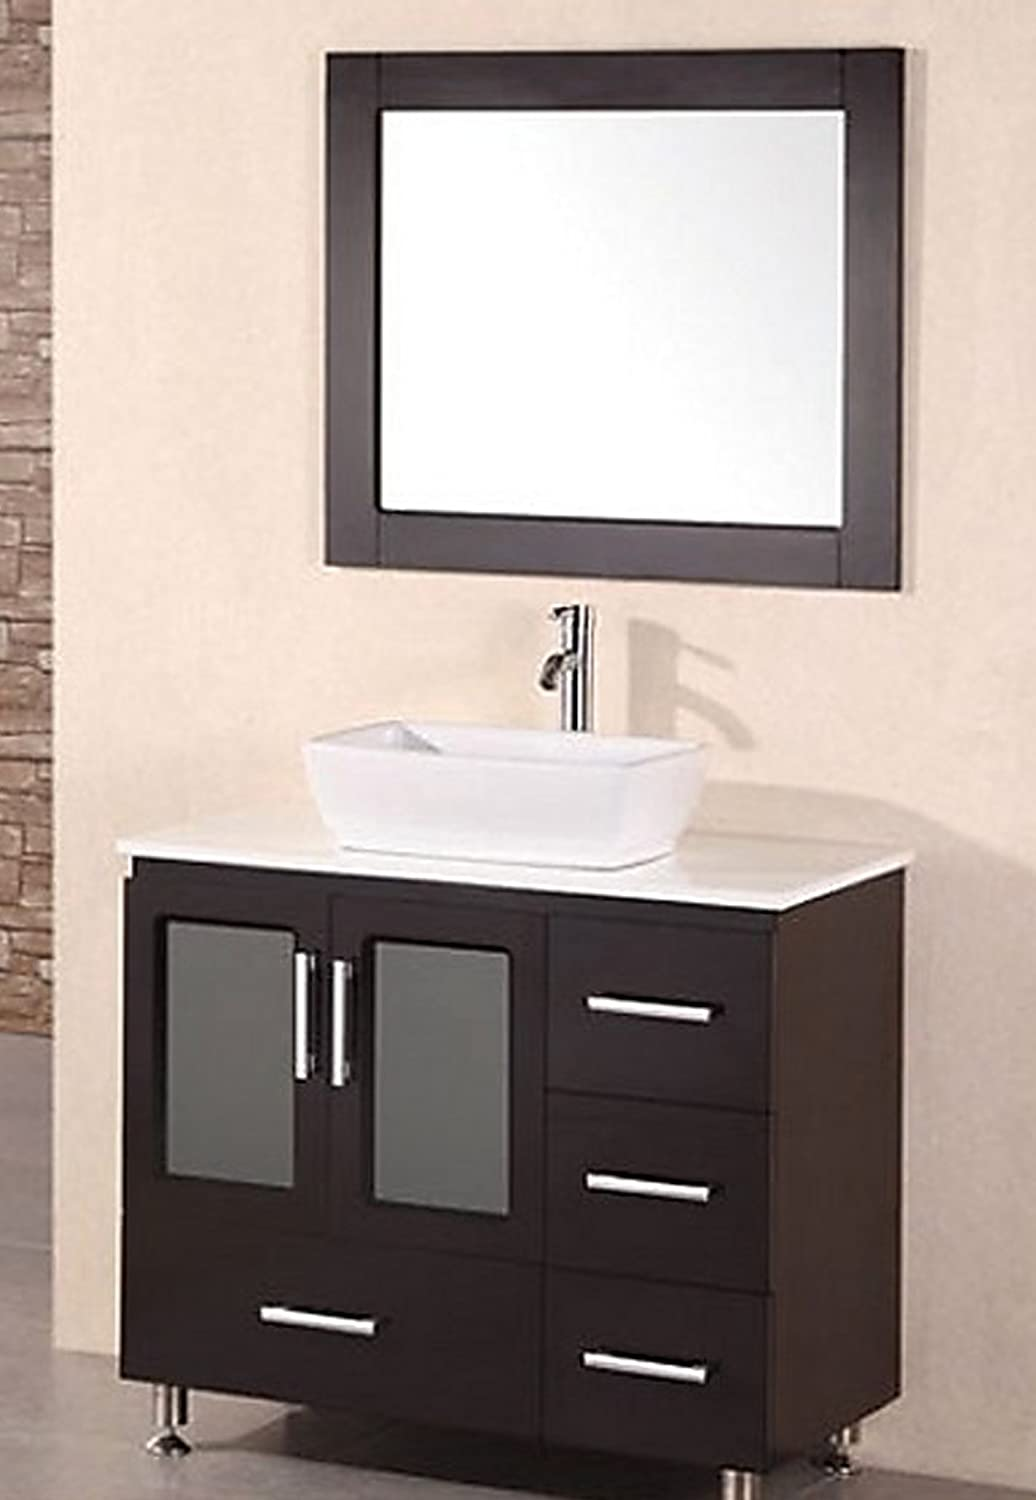 design element stanton single drop in sink vanity set with white finish 32 inch amazoncom